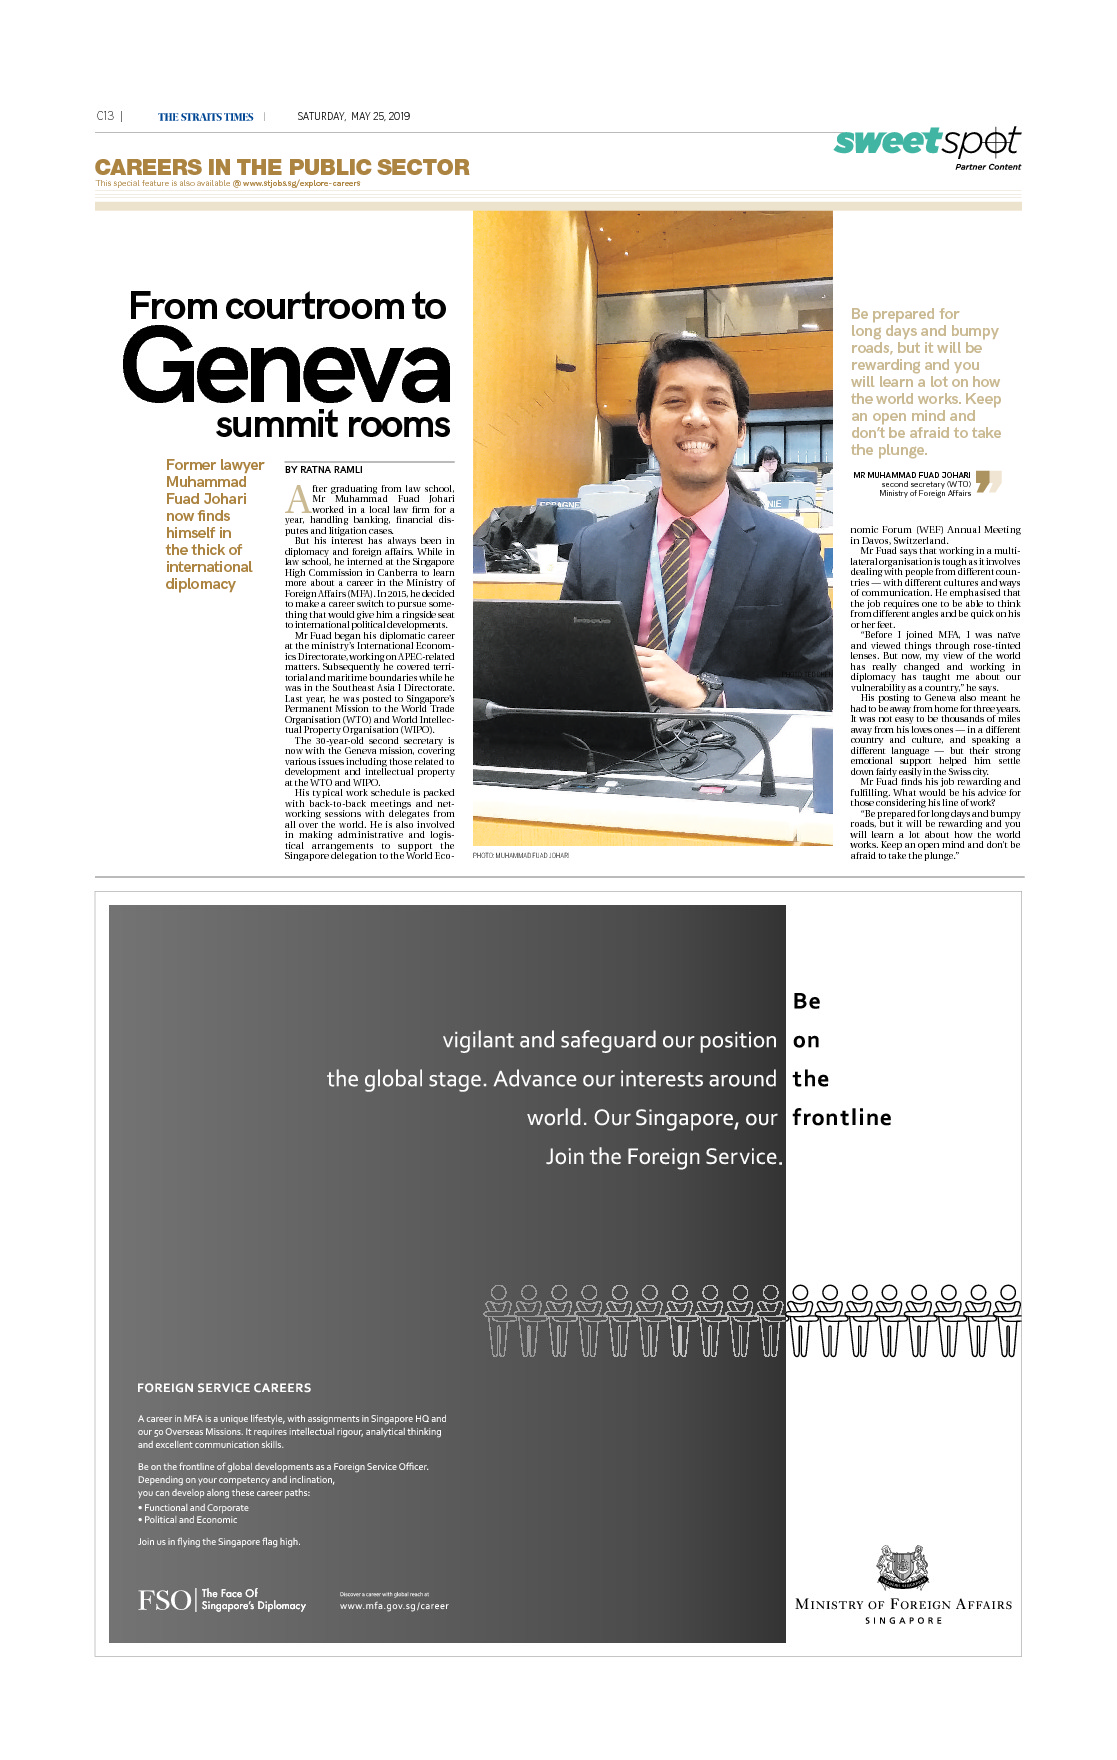 From courtroom to Geneva summit rooms